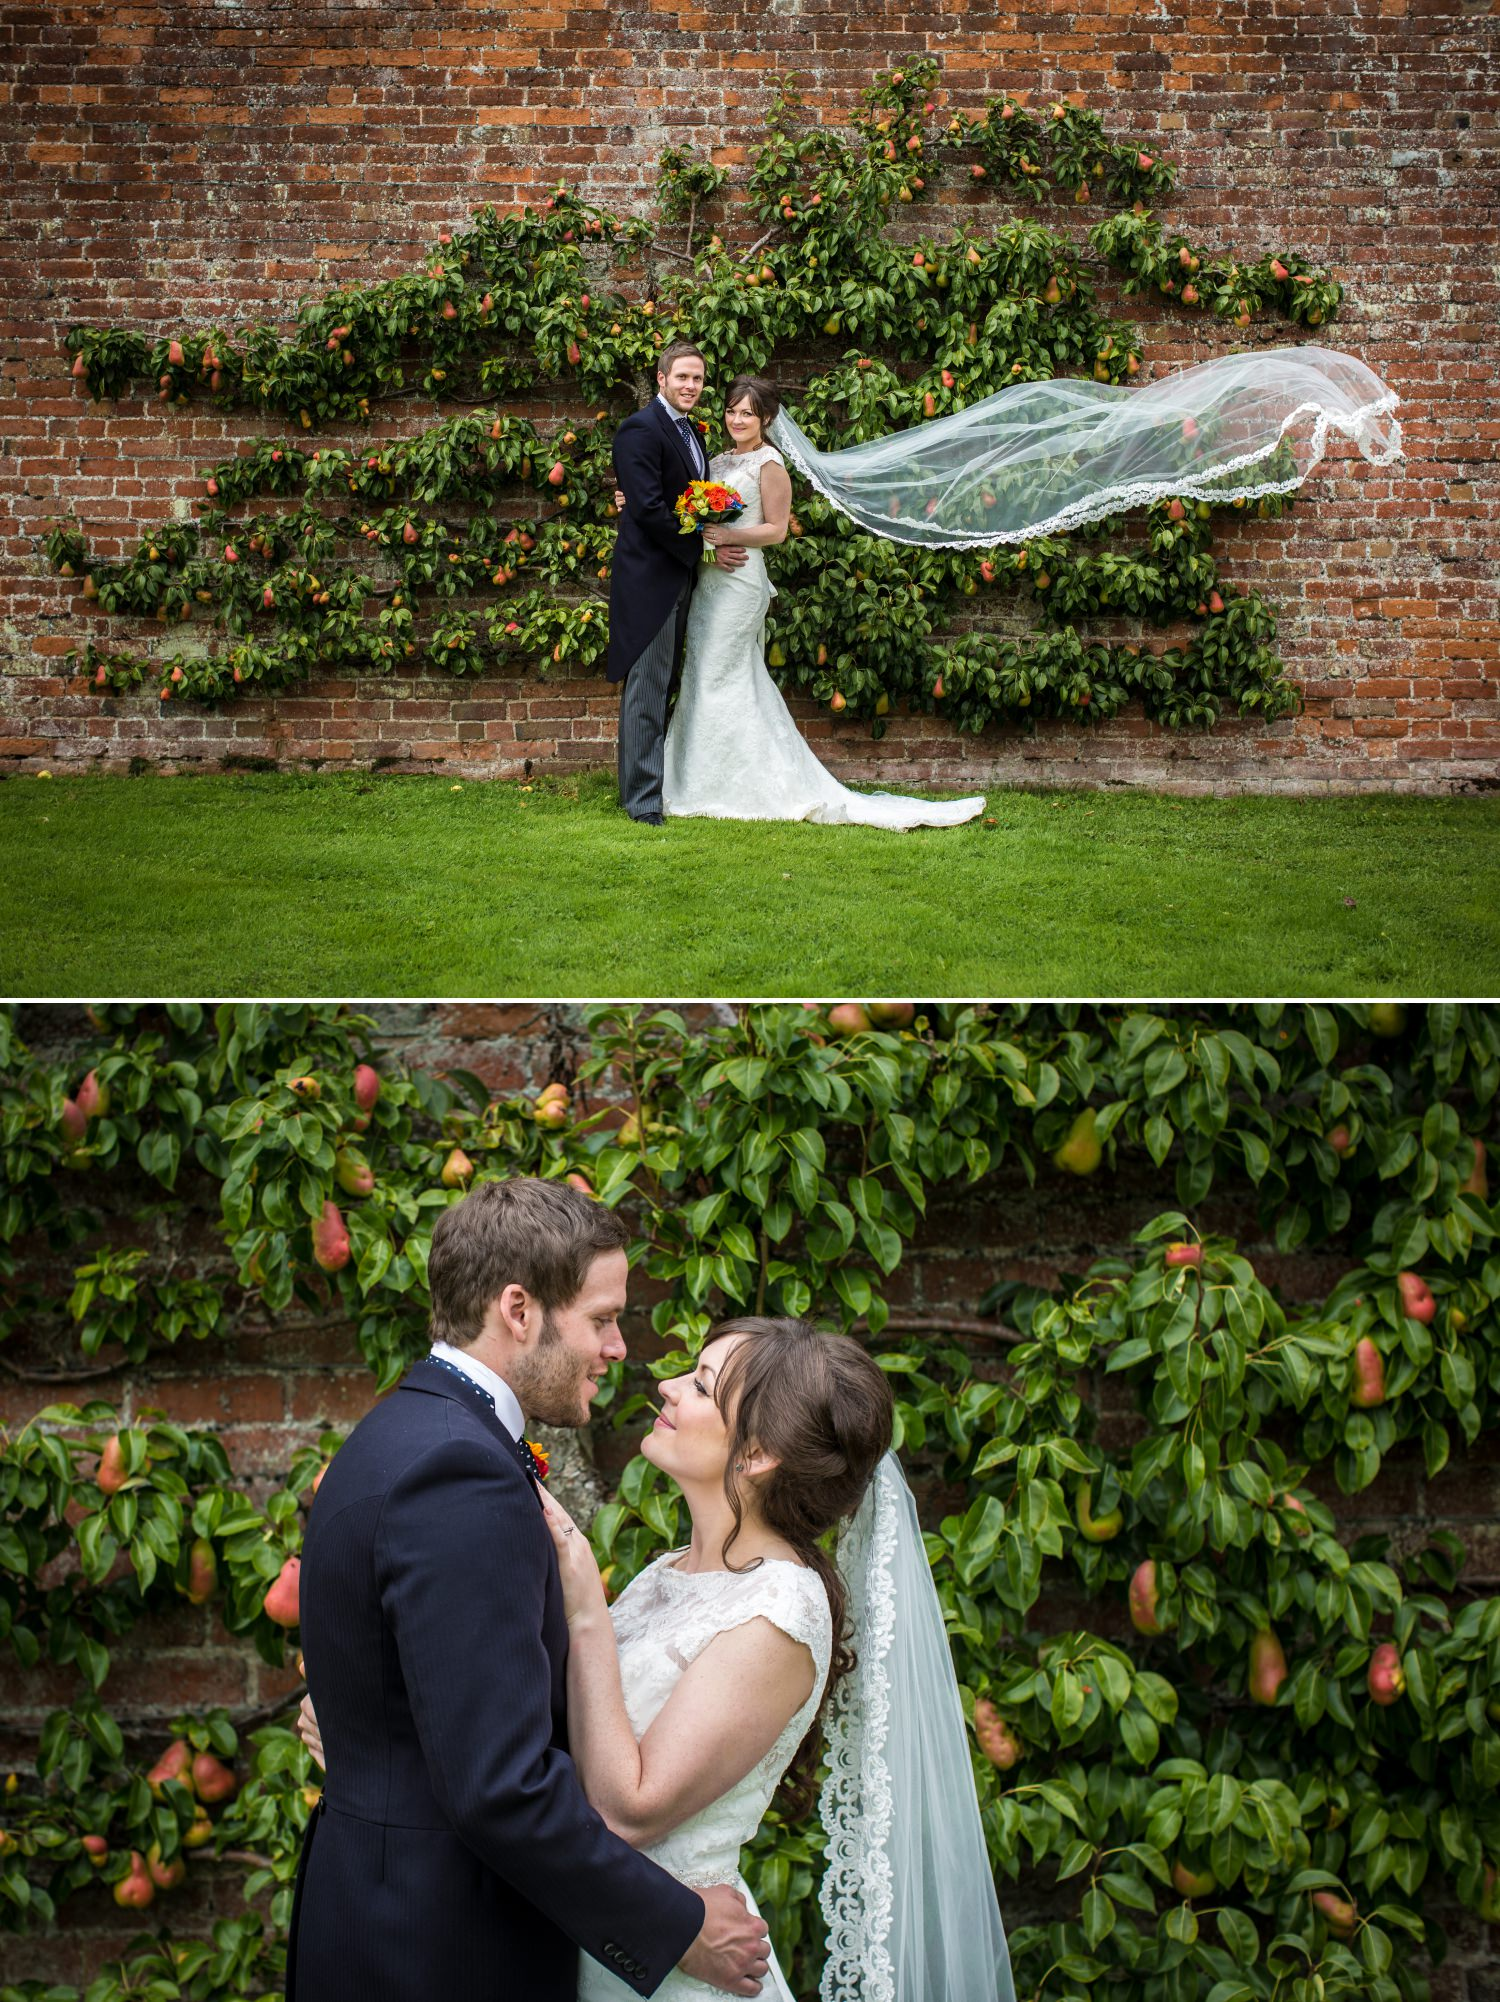 Wedding photography portraits at Cheshire venue Combermere Abbey